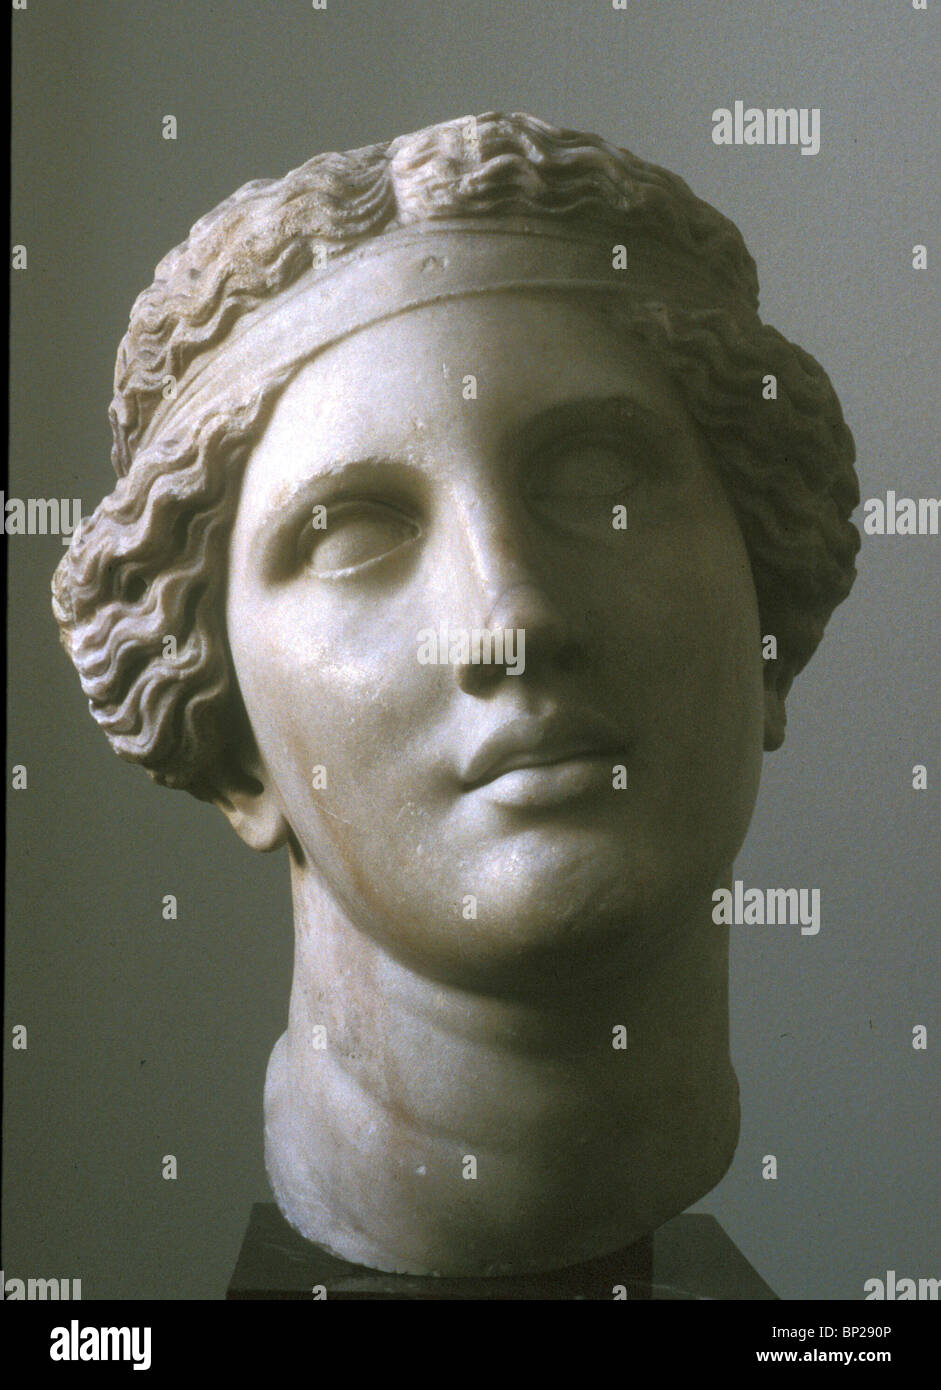 2458. MARBLE STATUTE OF A ROMAN LADY WITH A VERY SPECIAL HAIRSTYLE - Stock Image